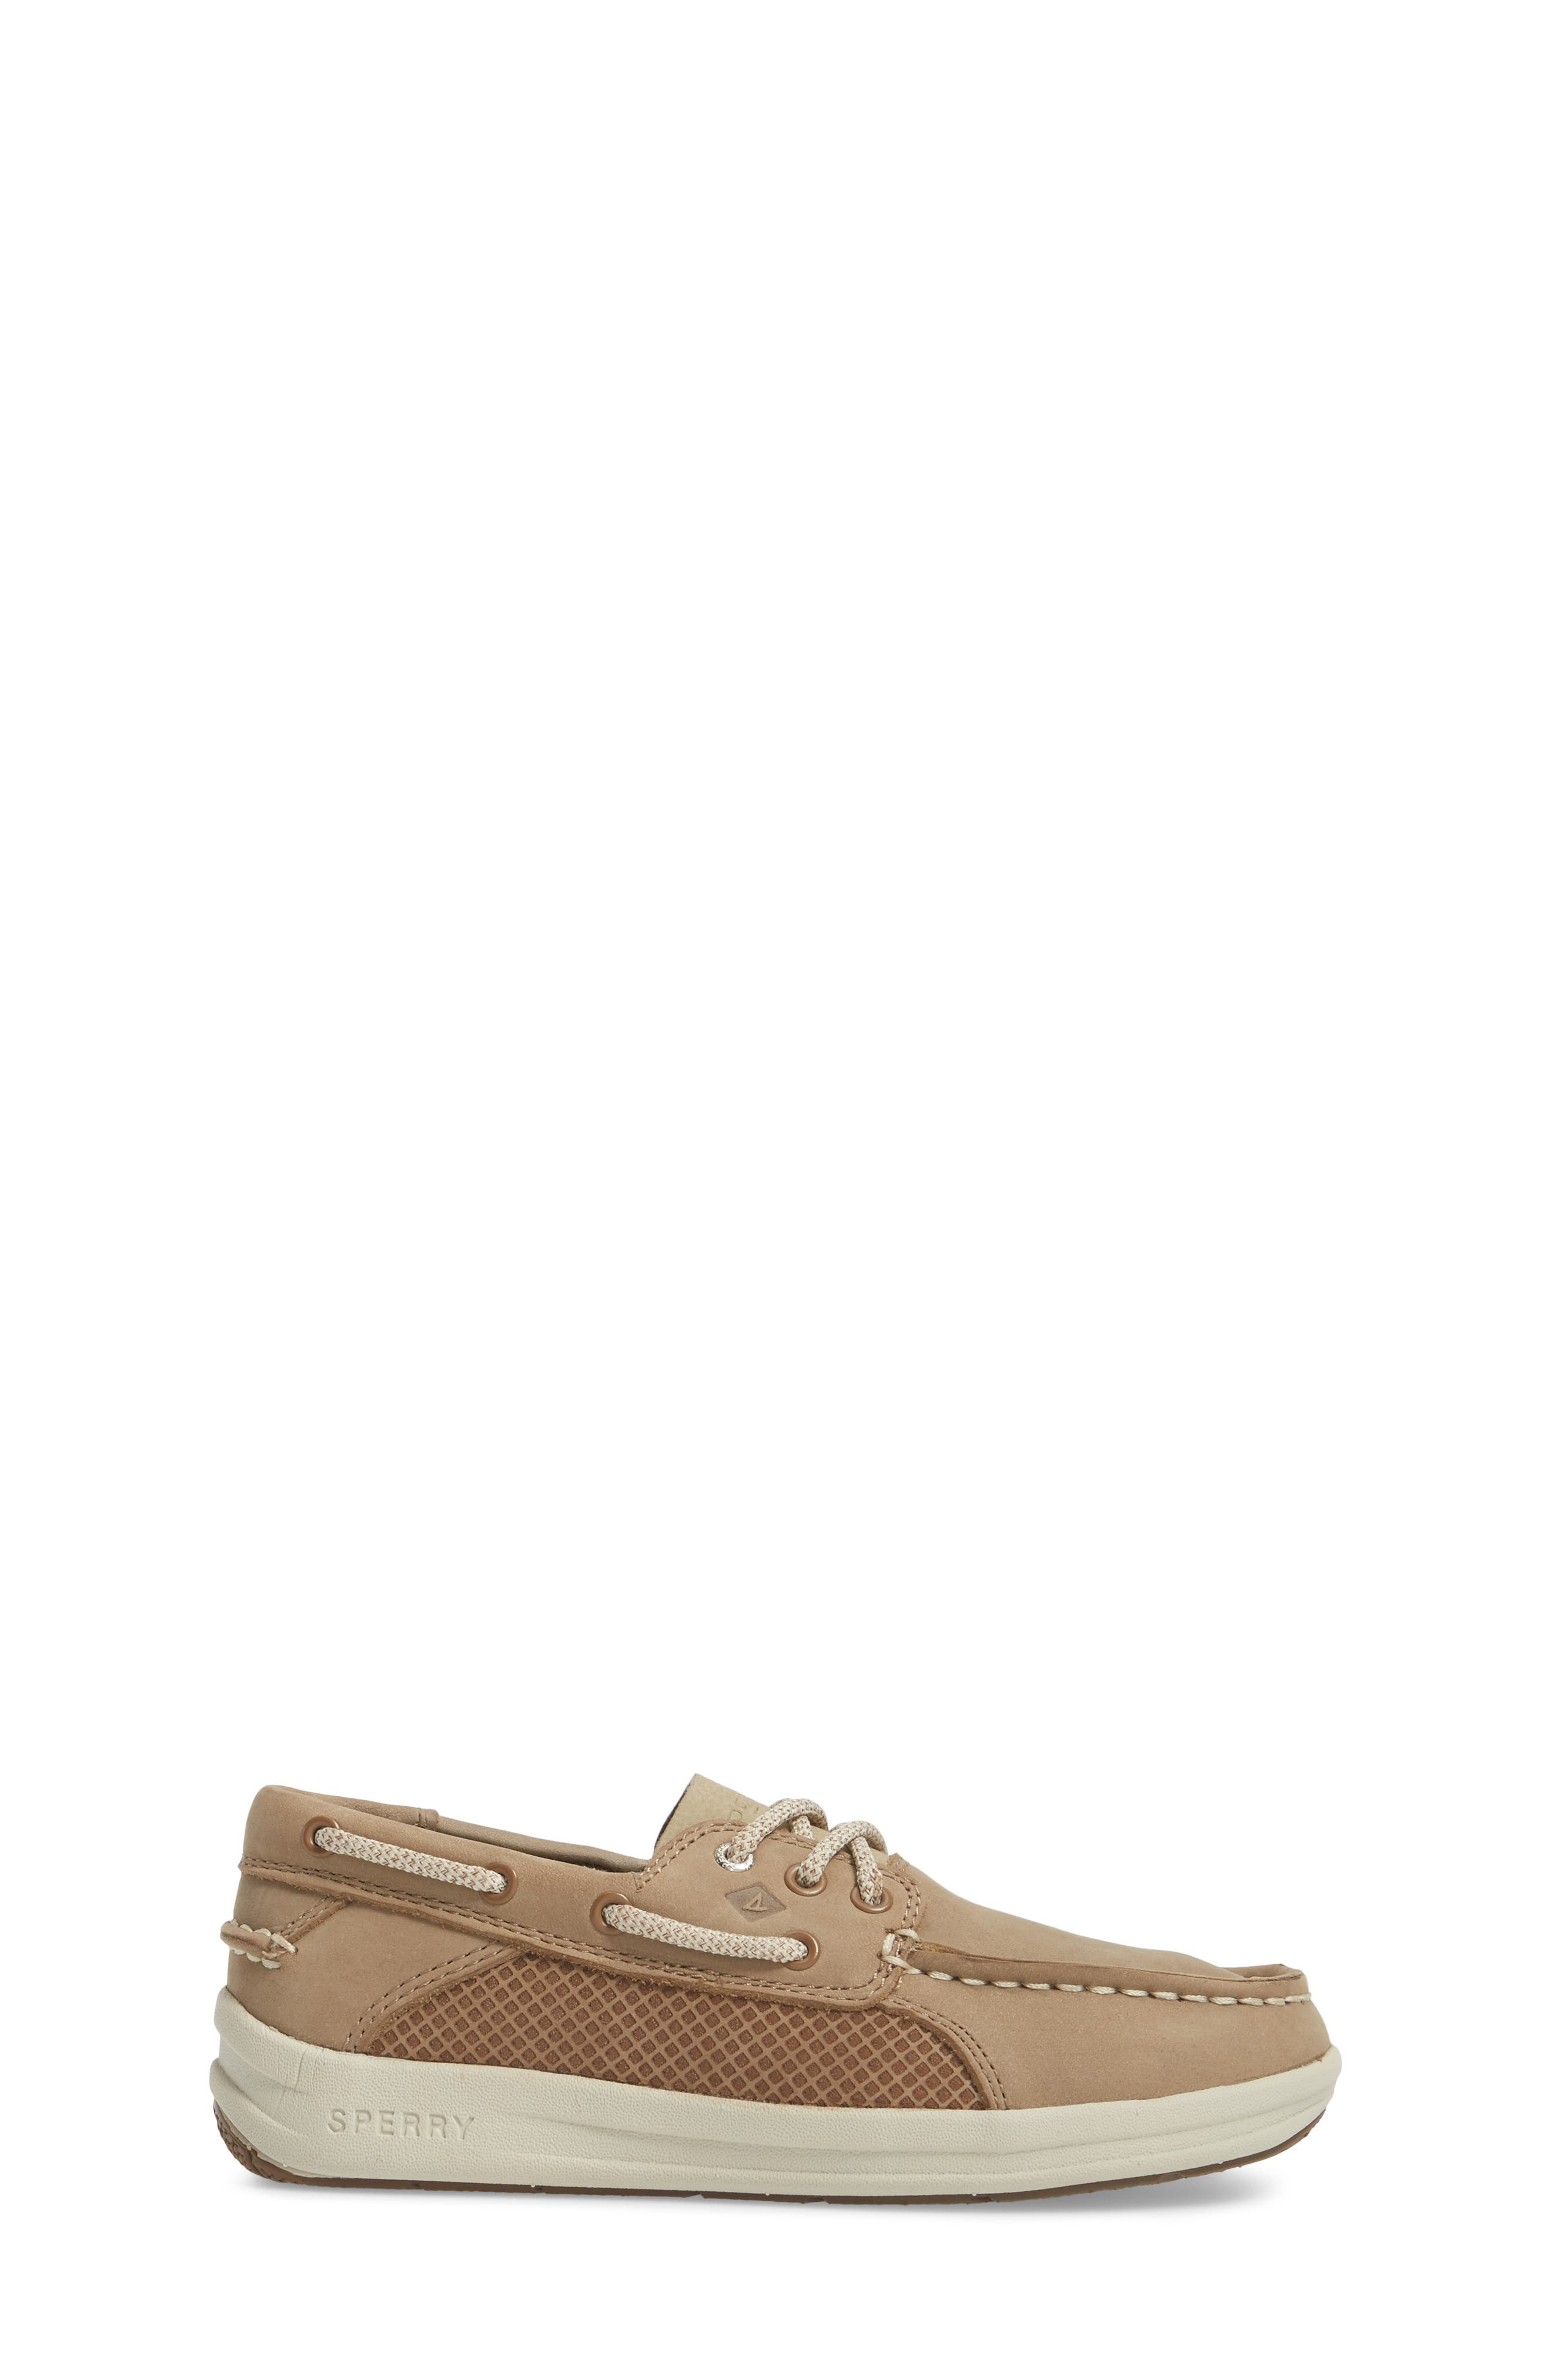 Sperry Gamefish Boat Shoe,                             Alternate thumbnail 3, color,                             Light Tan Leather